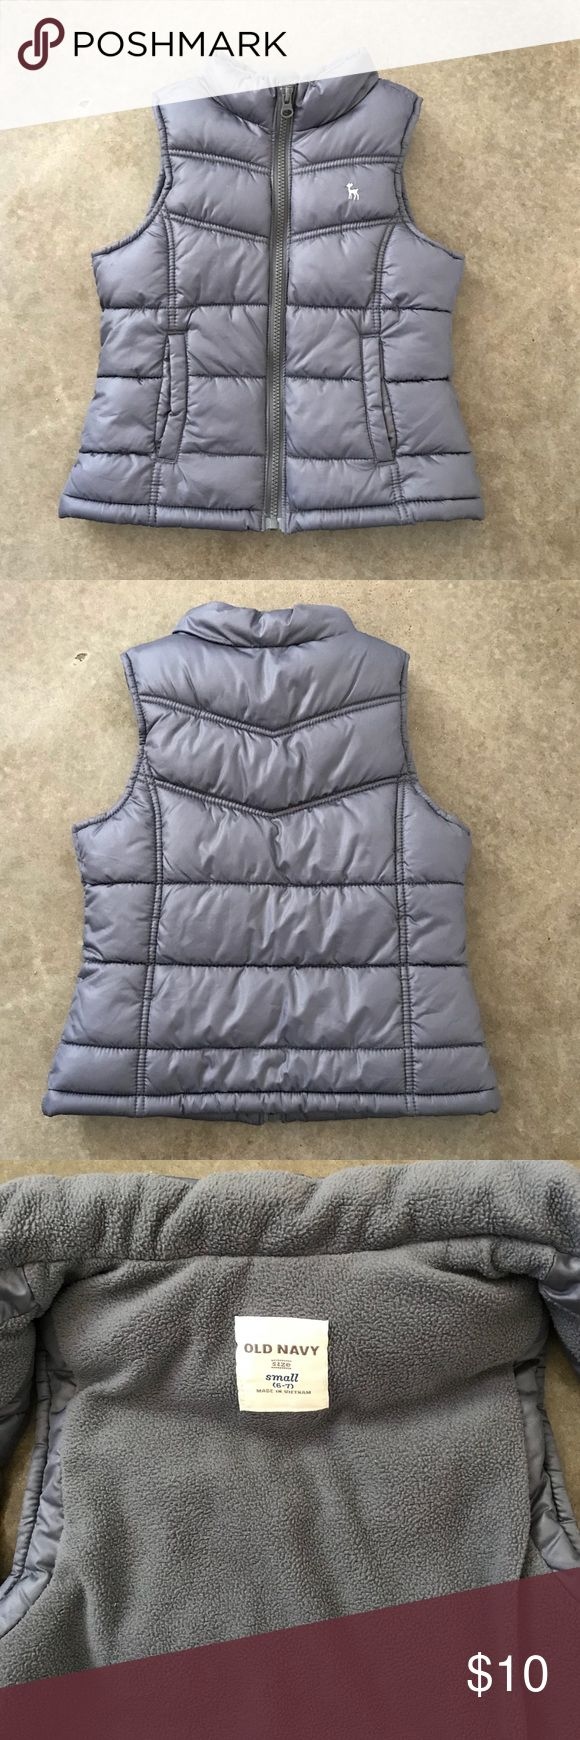 Girls Puffer Vest! Excellent condition! Perfect neutral color to layer with everything! Old Navy Jackets & Coats Vests